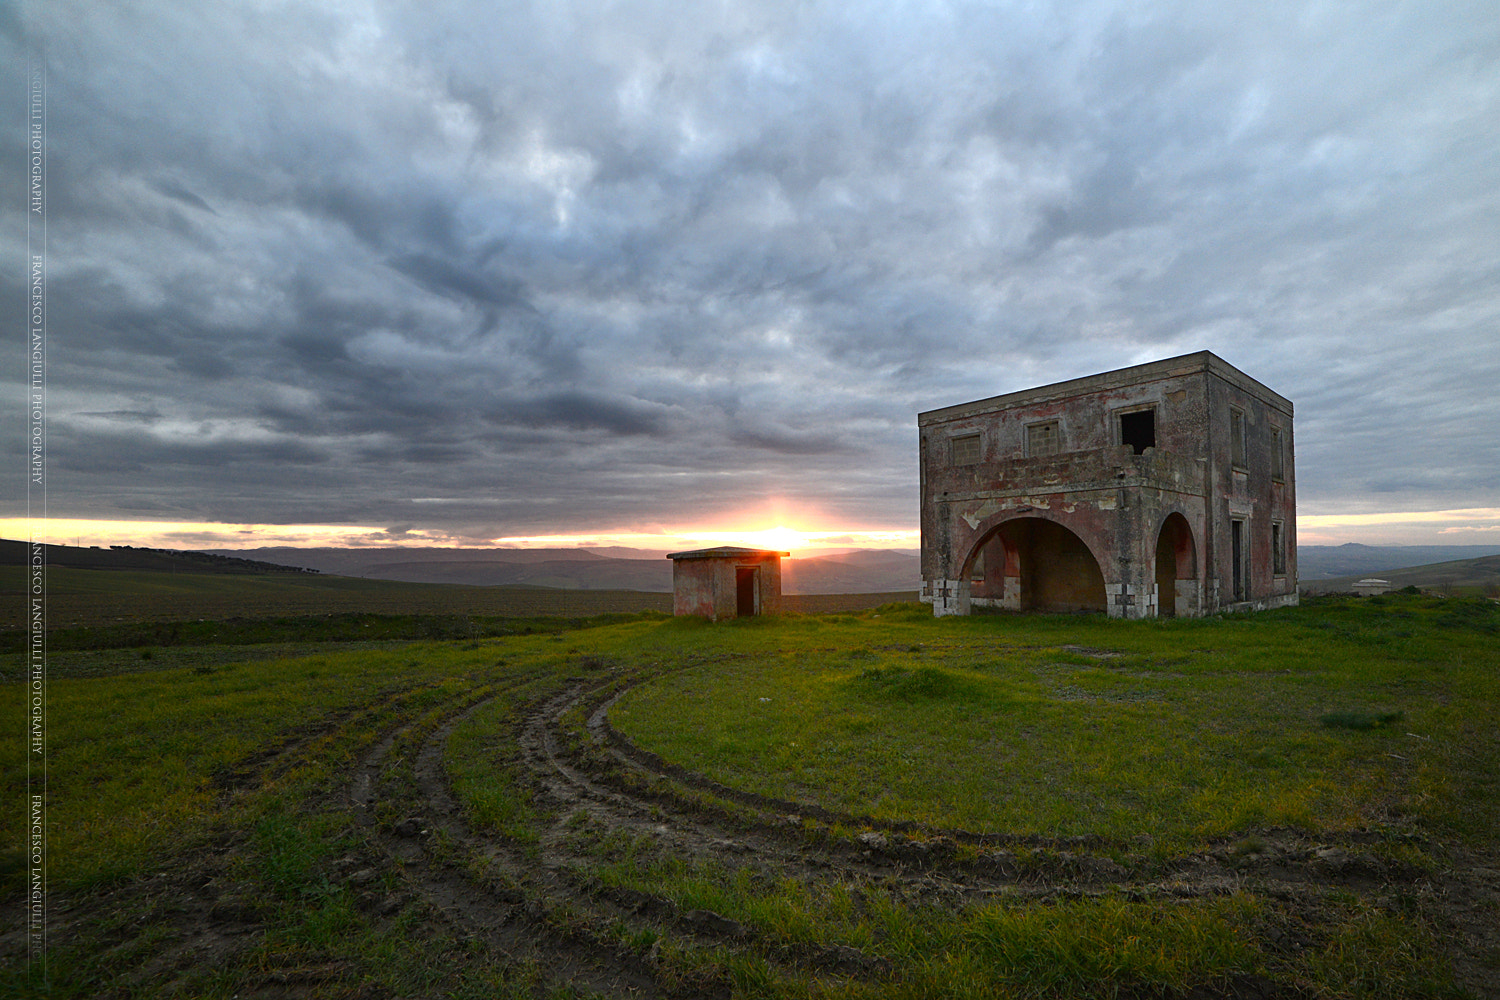 Photograph Cloudy Sunset by Milano Panoramica on 500px